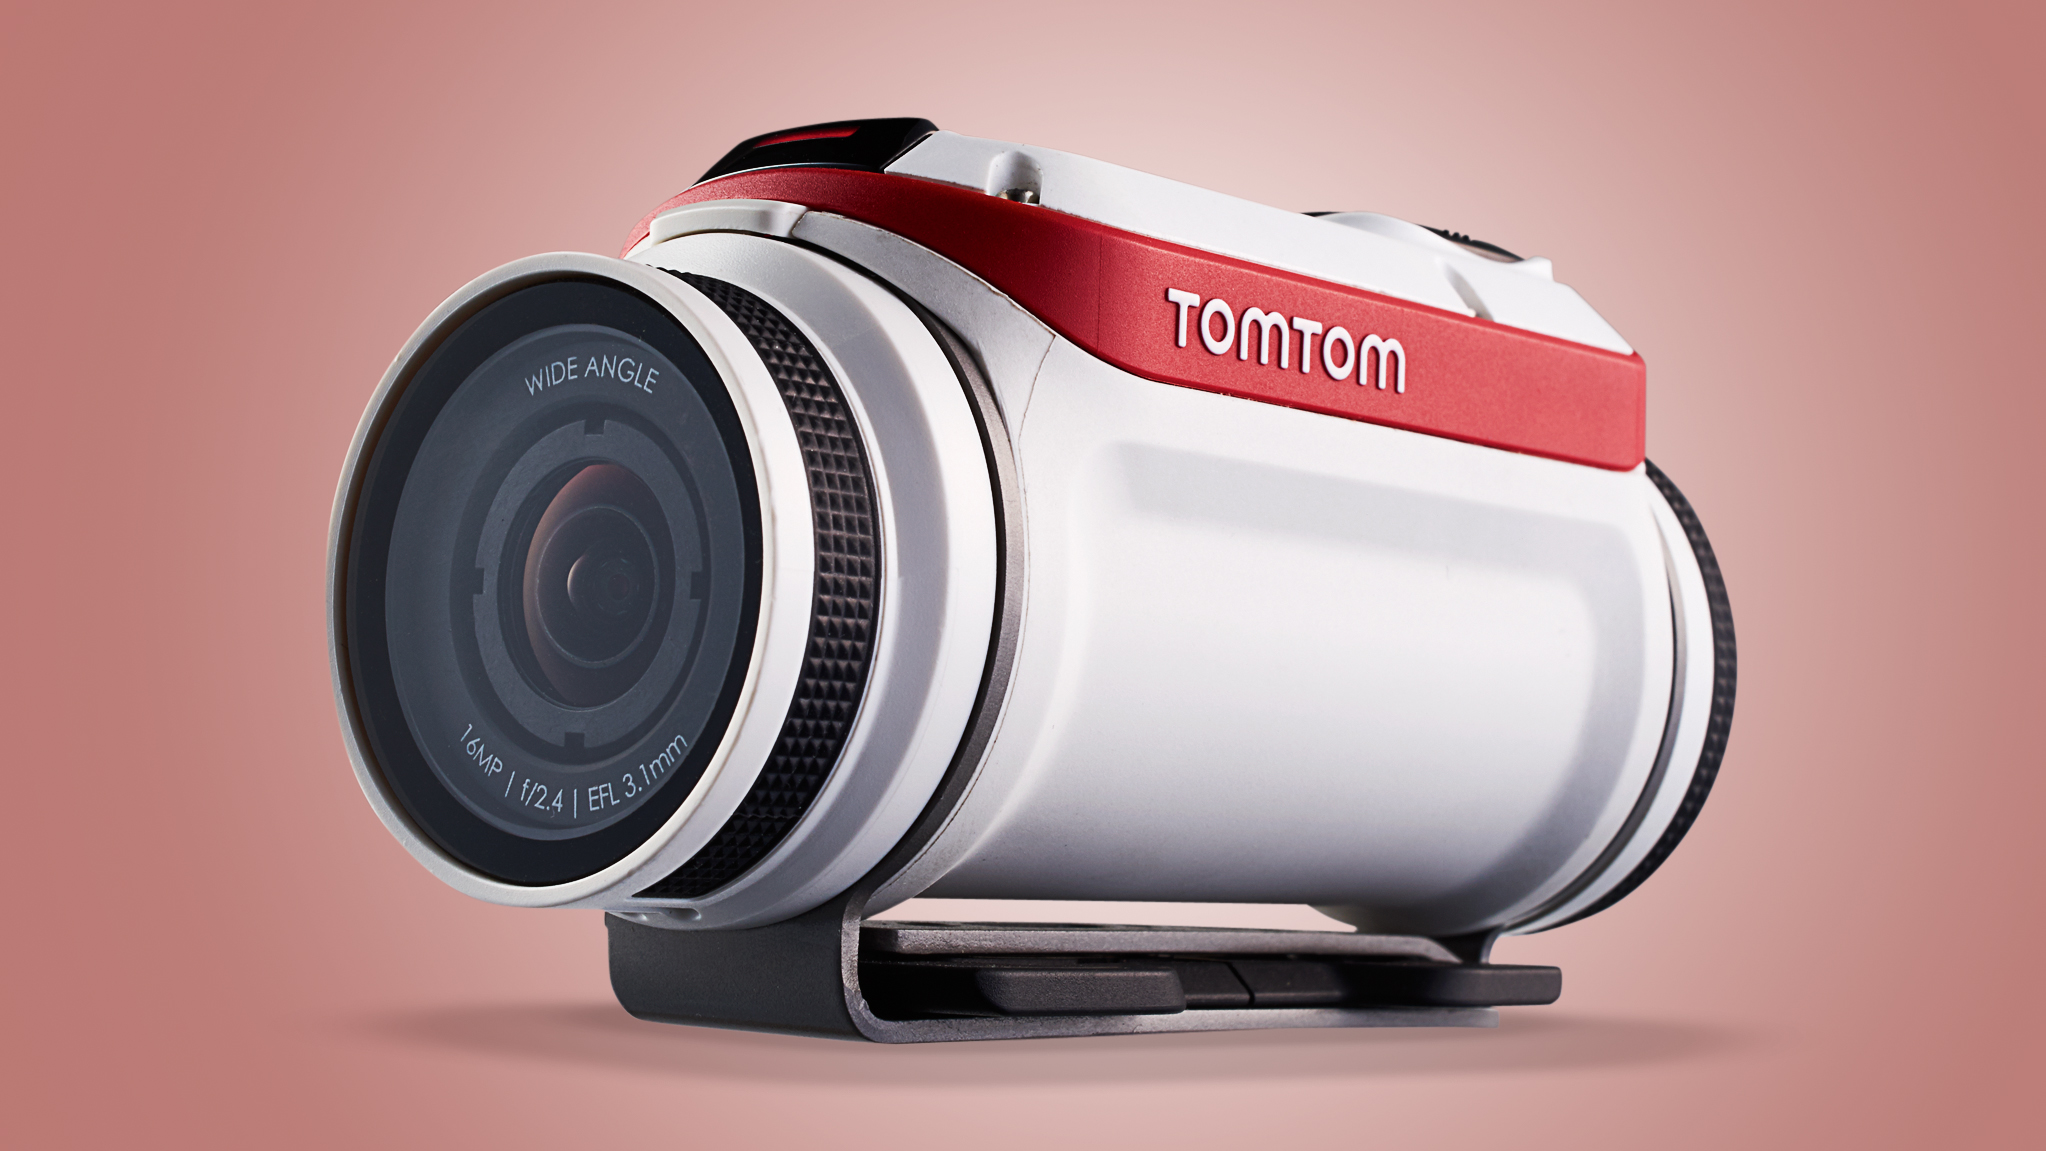 Best action cameras: TomTom Bandit